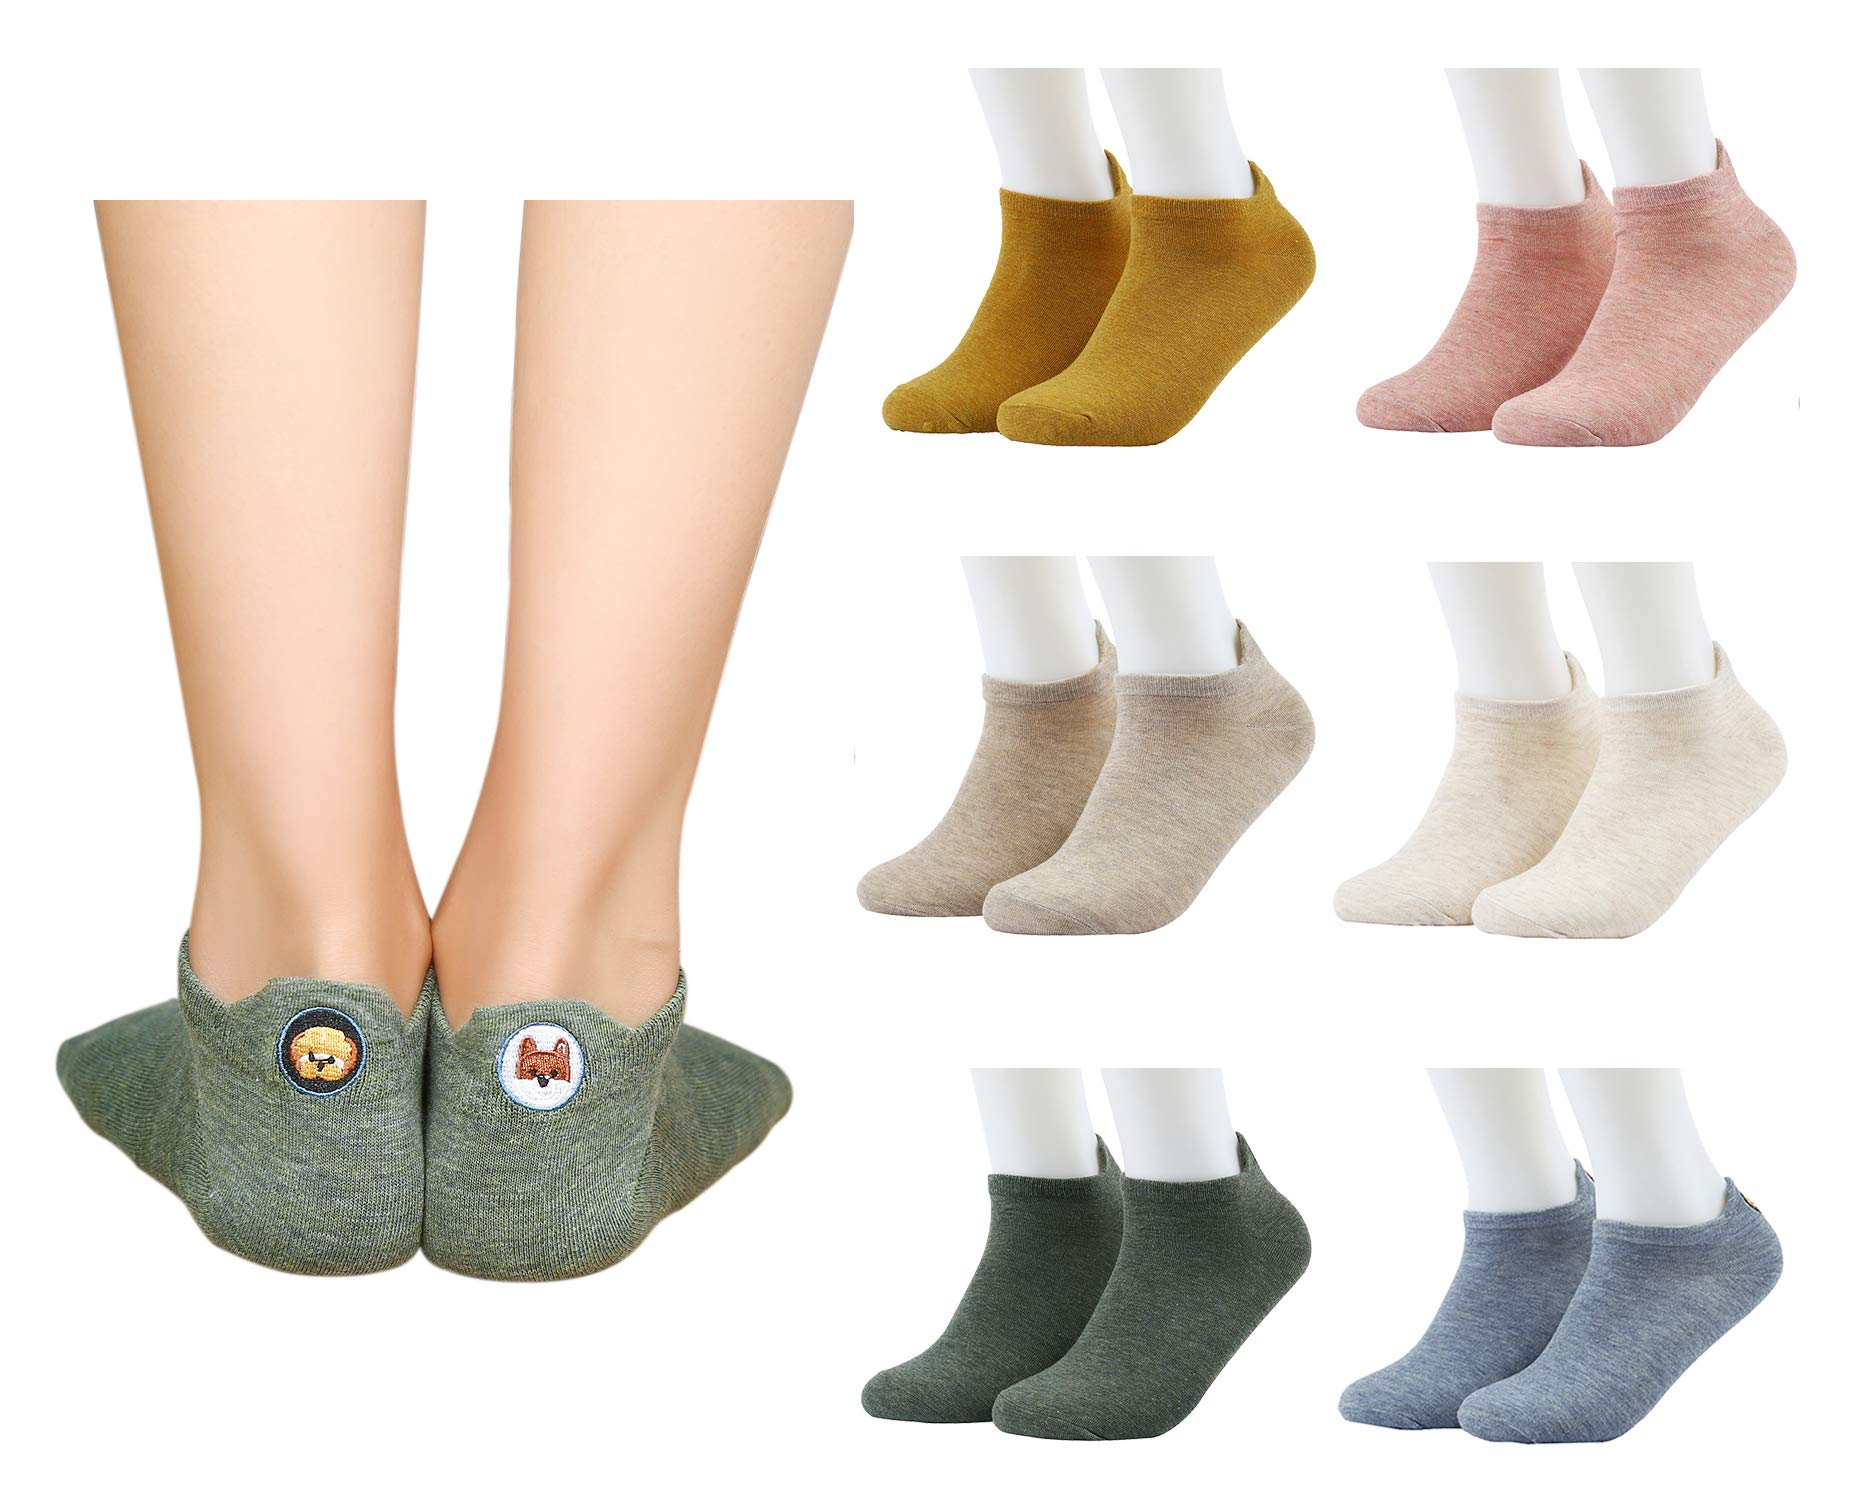 Sallcks Womens Girls Cute Dog Ankle Socks Low Cut Casual Cotton Hipster Socks 6 Pairs